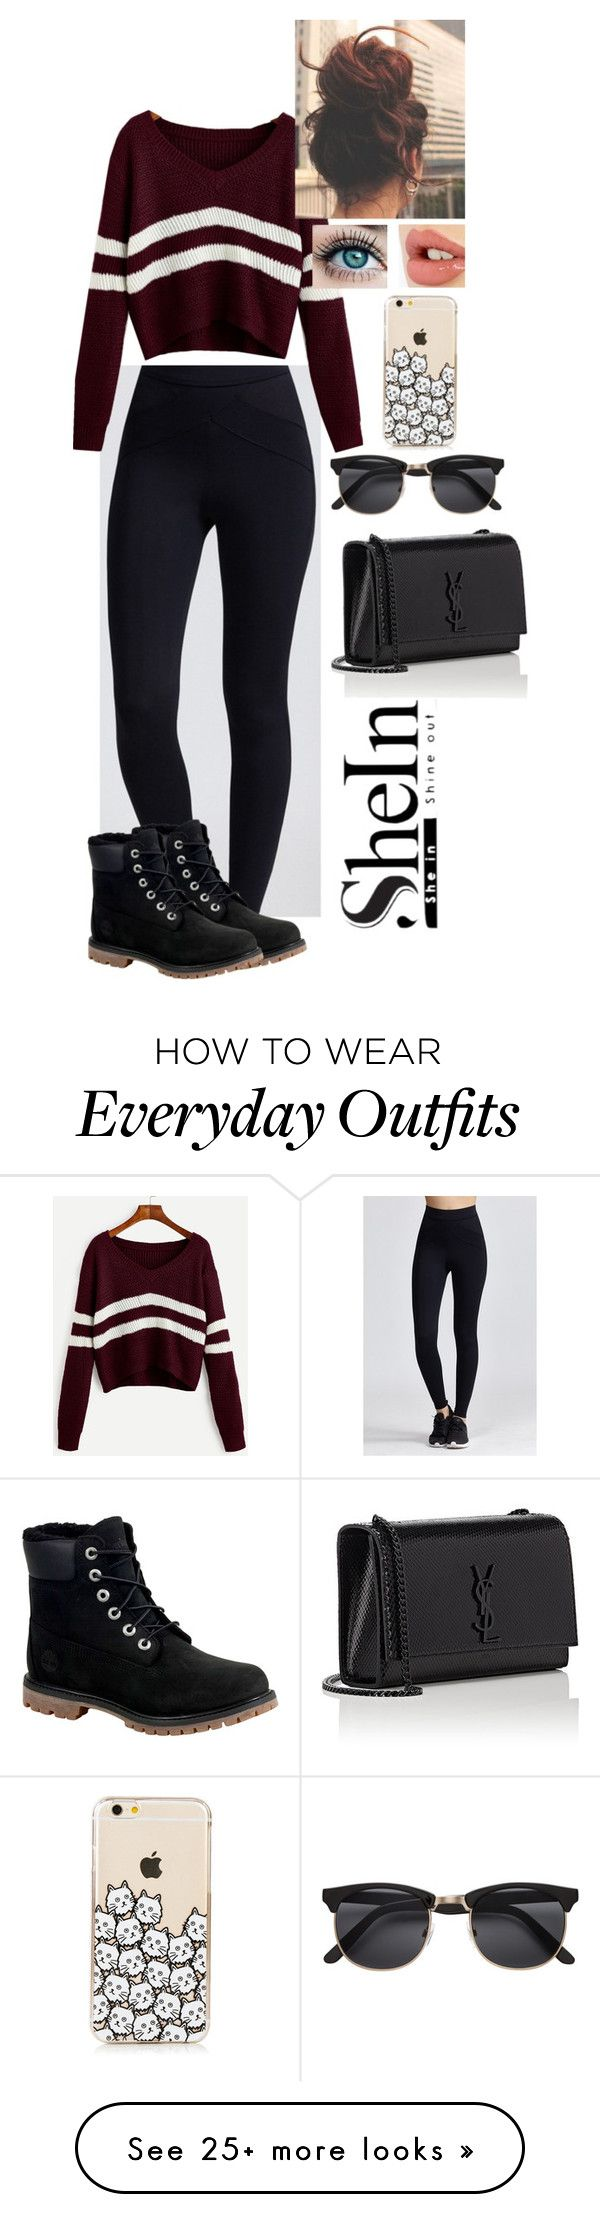 """""""School Outfit"""" by crashwegener on Polyvore featuring Timberland, Charlotte Tilbury, H&M and Yves Saint Laurent"""